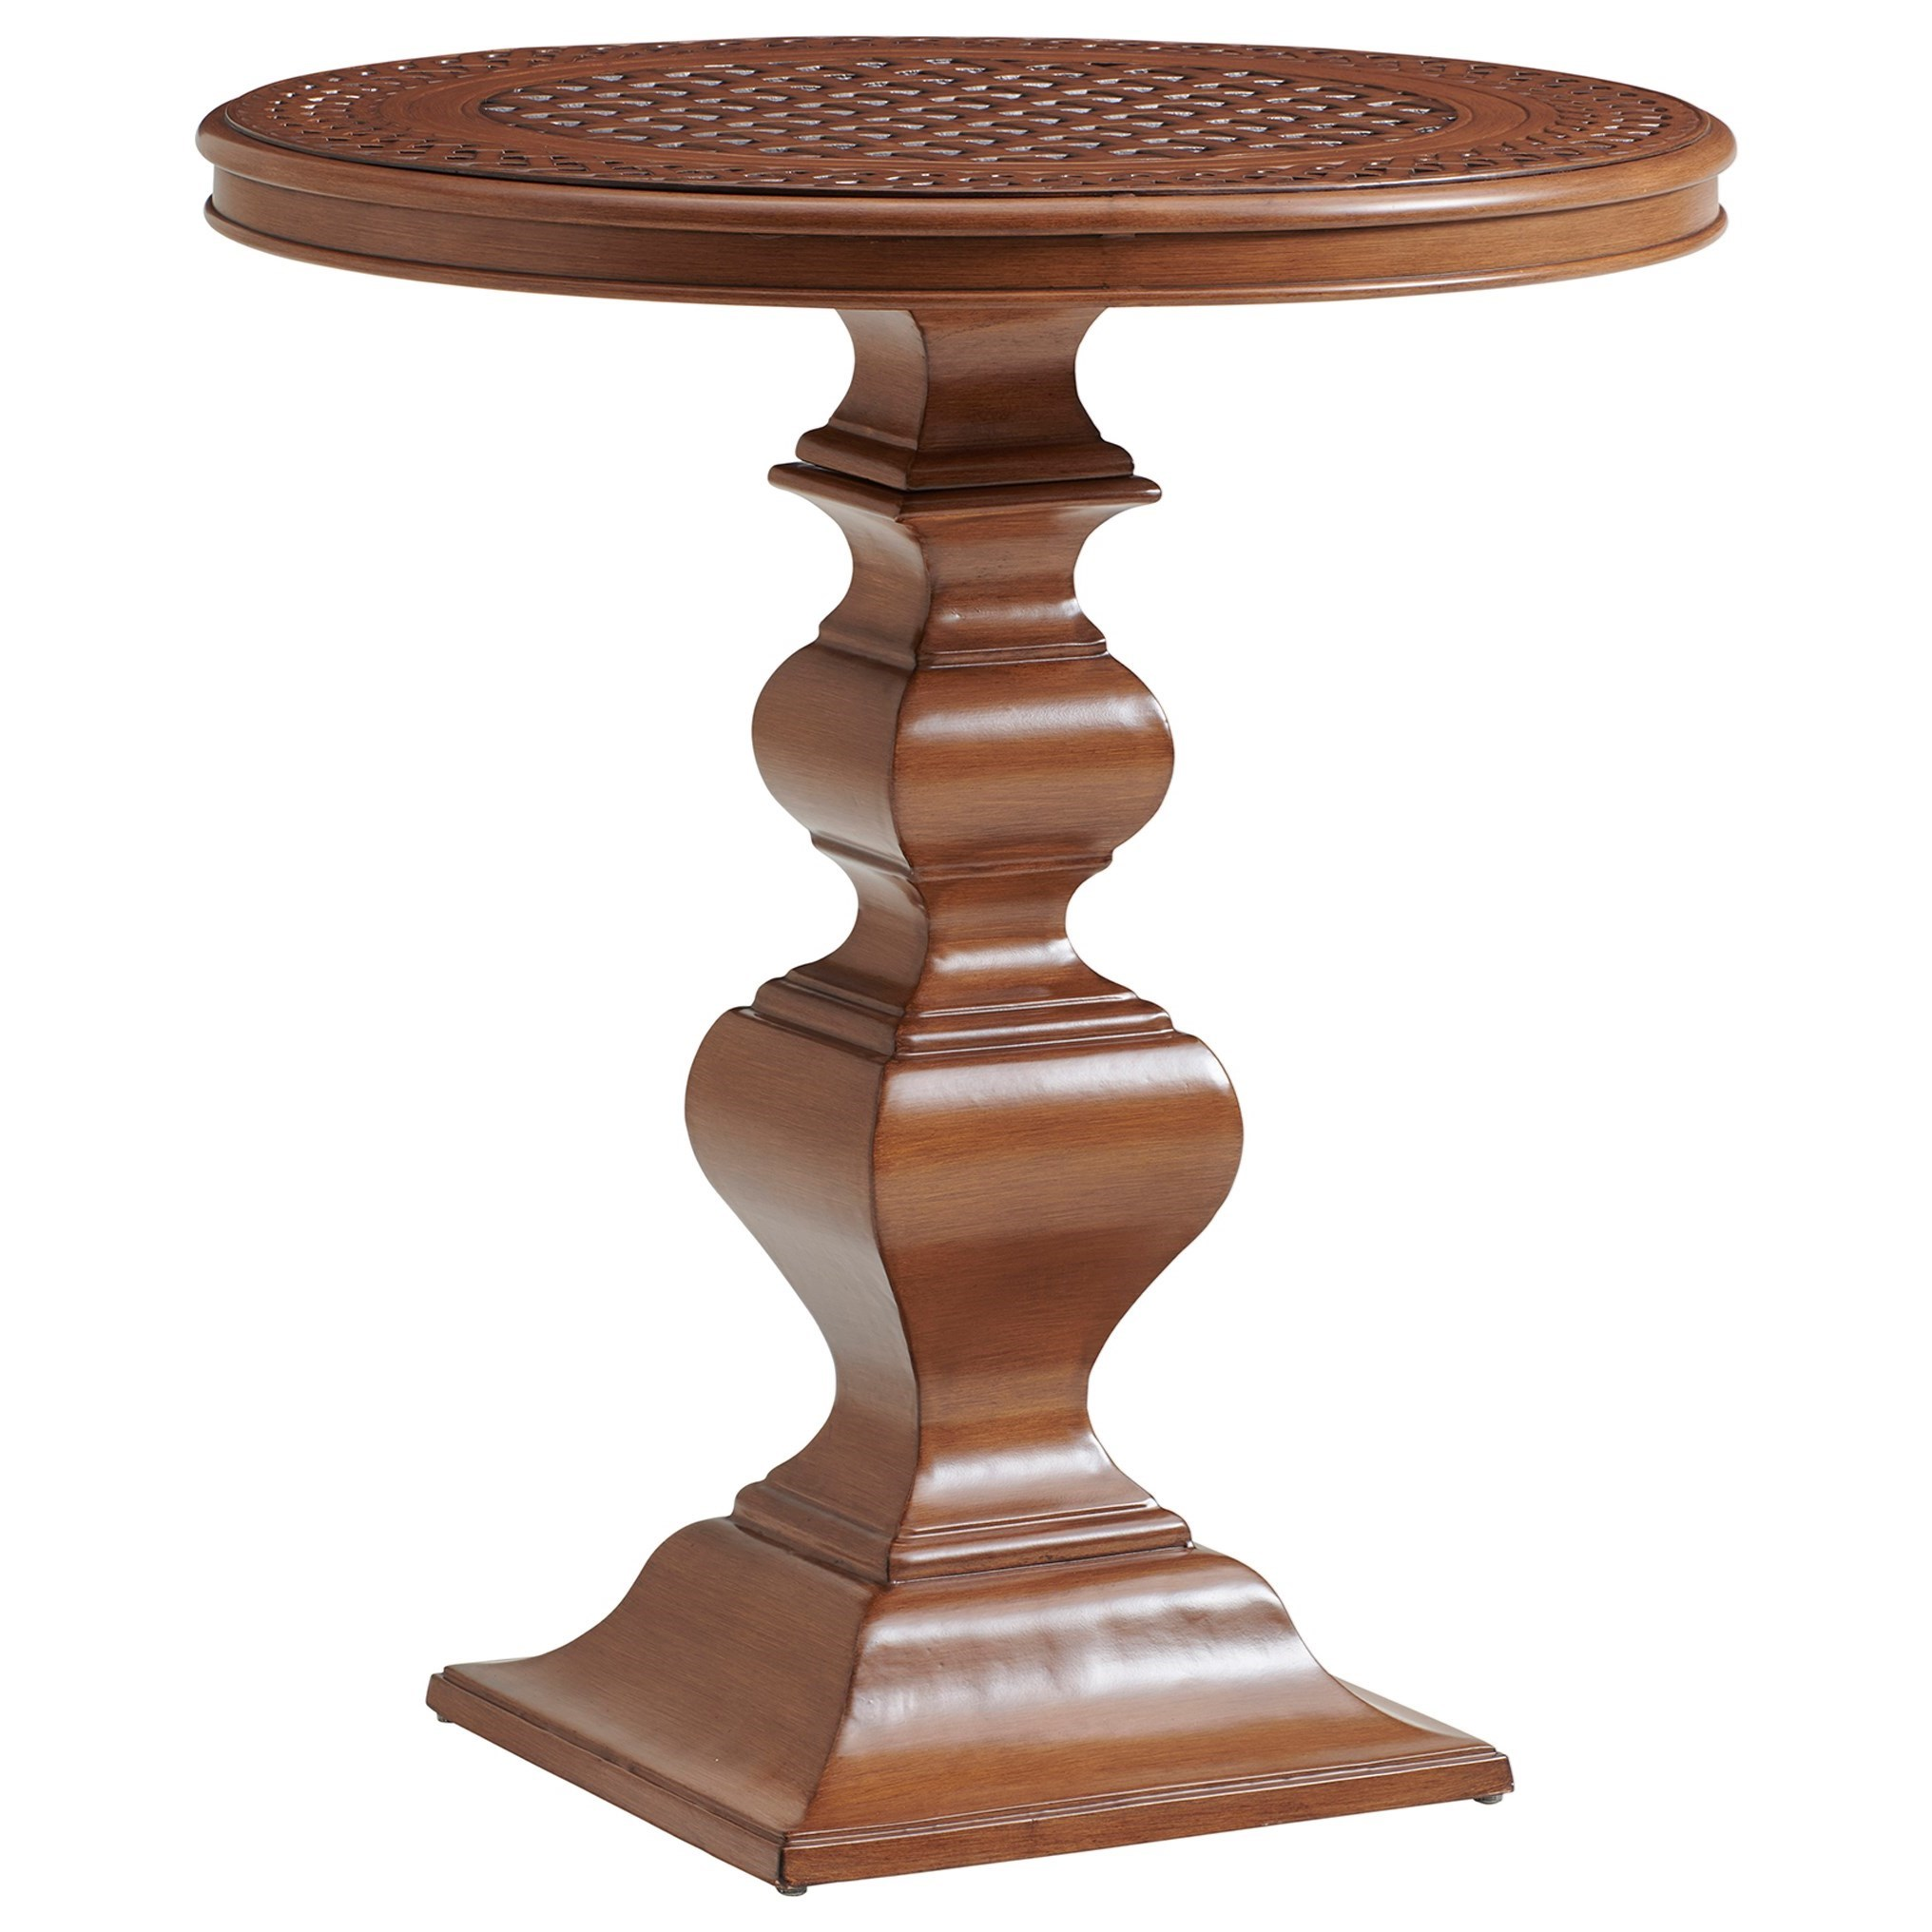 Harbor Isle Adjustable Bistro Dining Table by Tommy Bahama Outdoor Living at Baer's Furniture